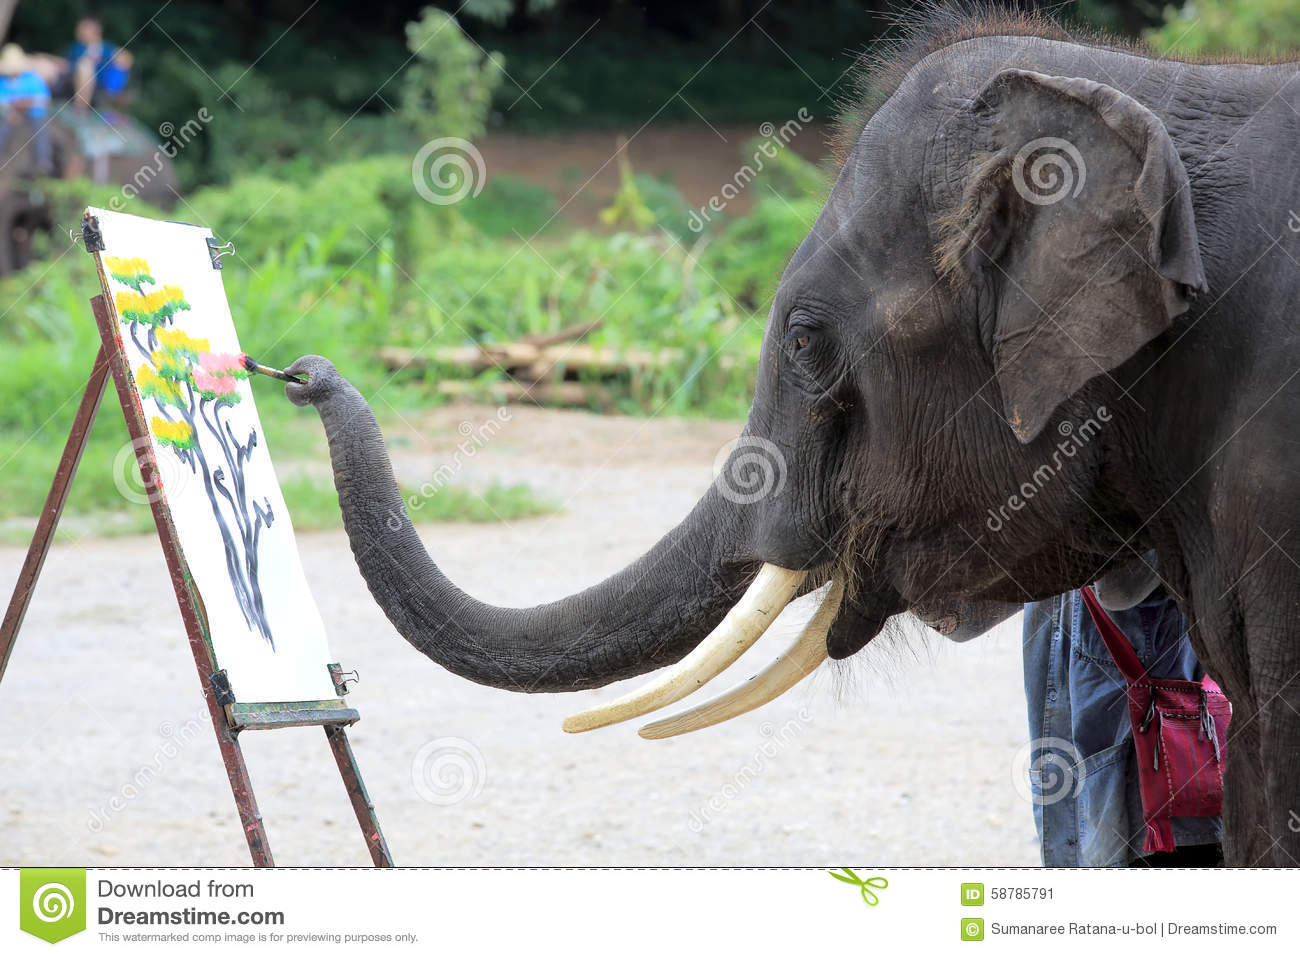 An elephant is drawing a picture